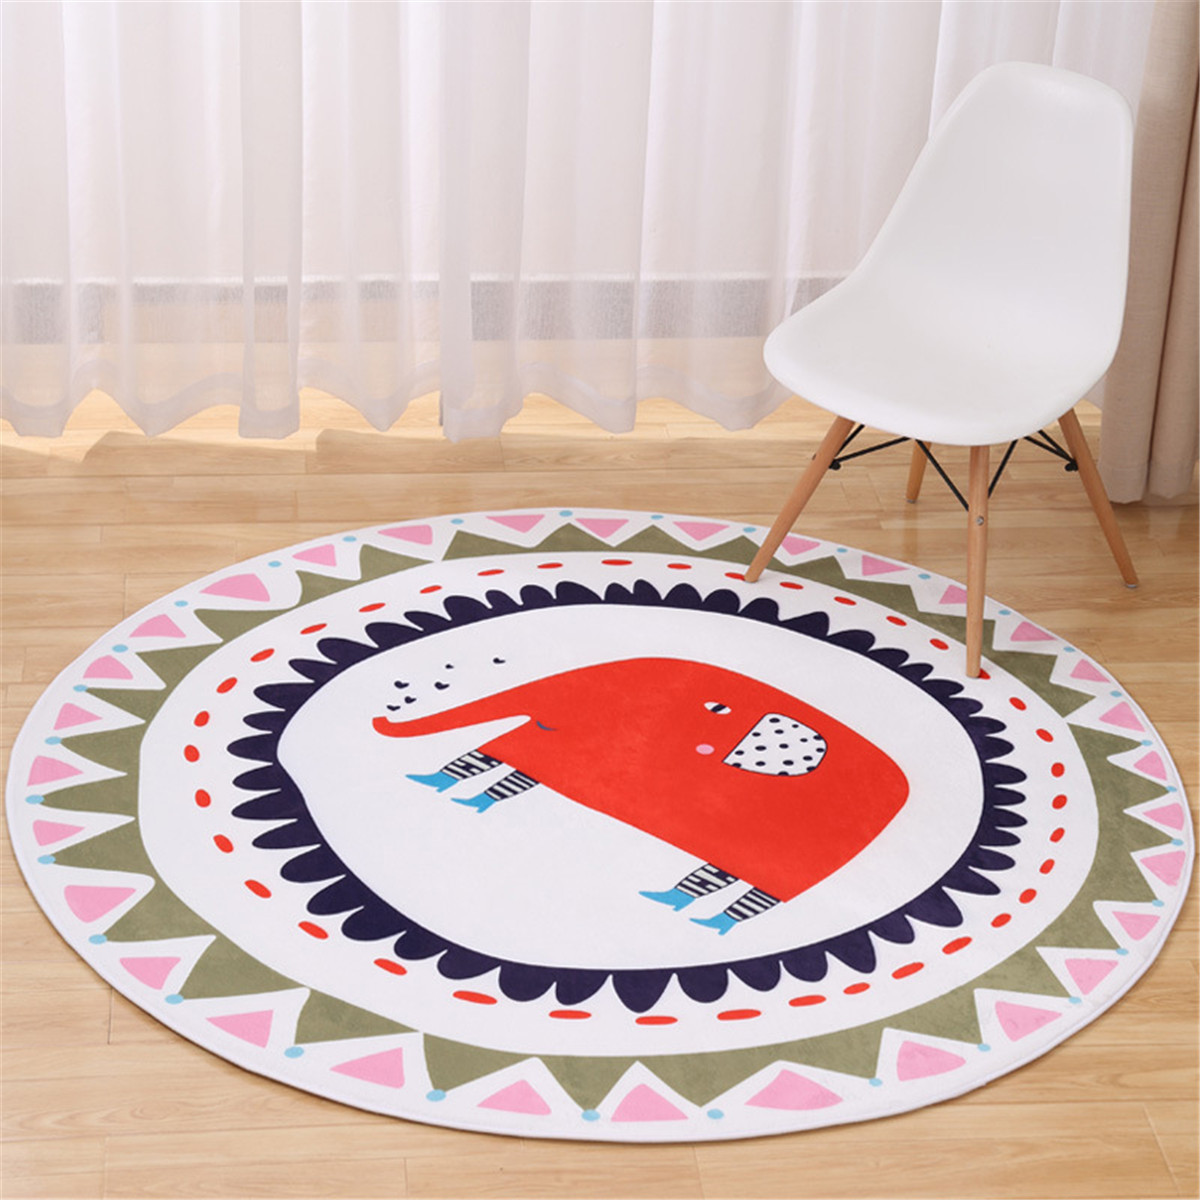 Picture of: Round Rugs Baby Rug Nursery Rugs Cartoon Elephant Home Decoration Area Rugs Bedroom Living Room Carpet Mat Baby Crawling Mats Kids Play Mat Machine Washable Rugs 39inch Max Walmart Com Walmart Com